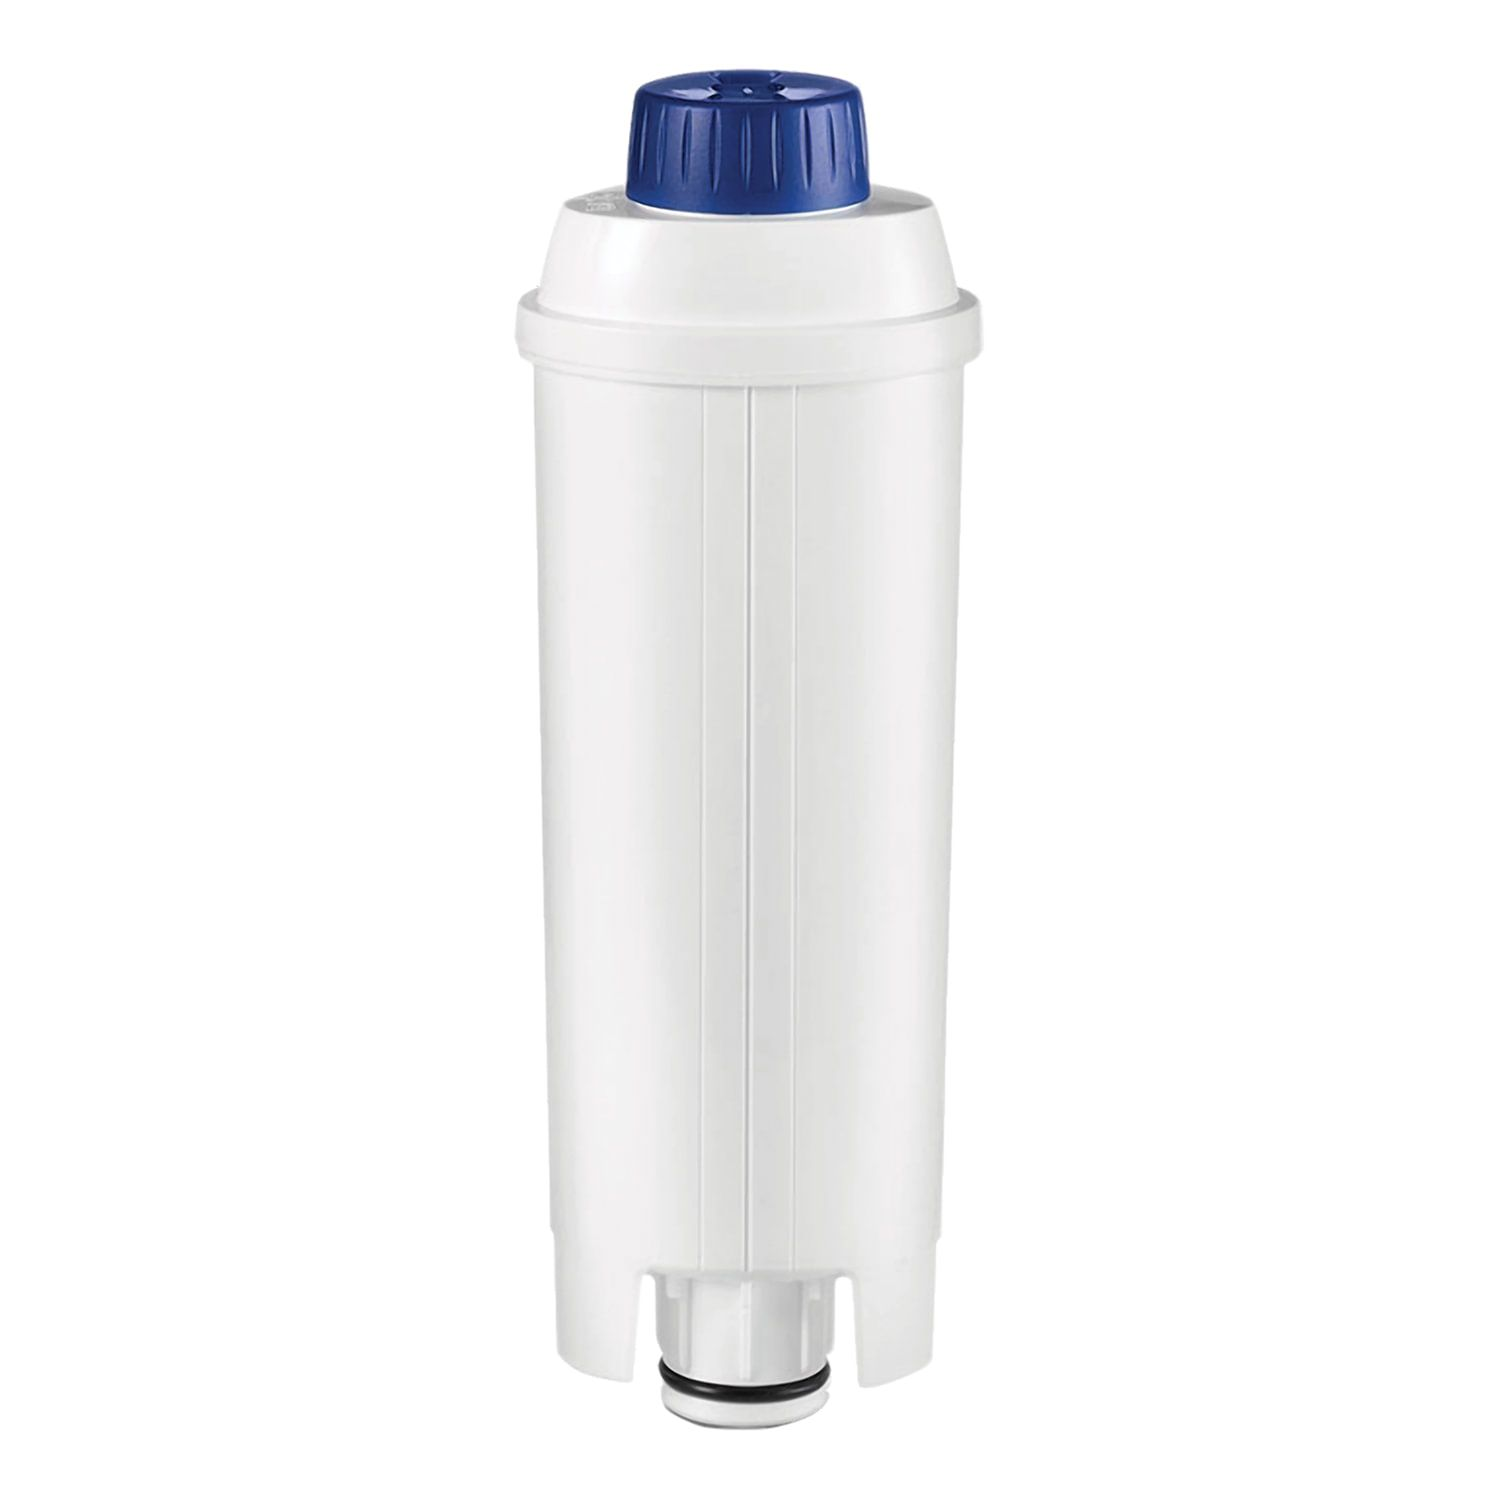 Filter cartridge for DELONGHI DLSC002 coffee machines, for water, to the ECAM series